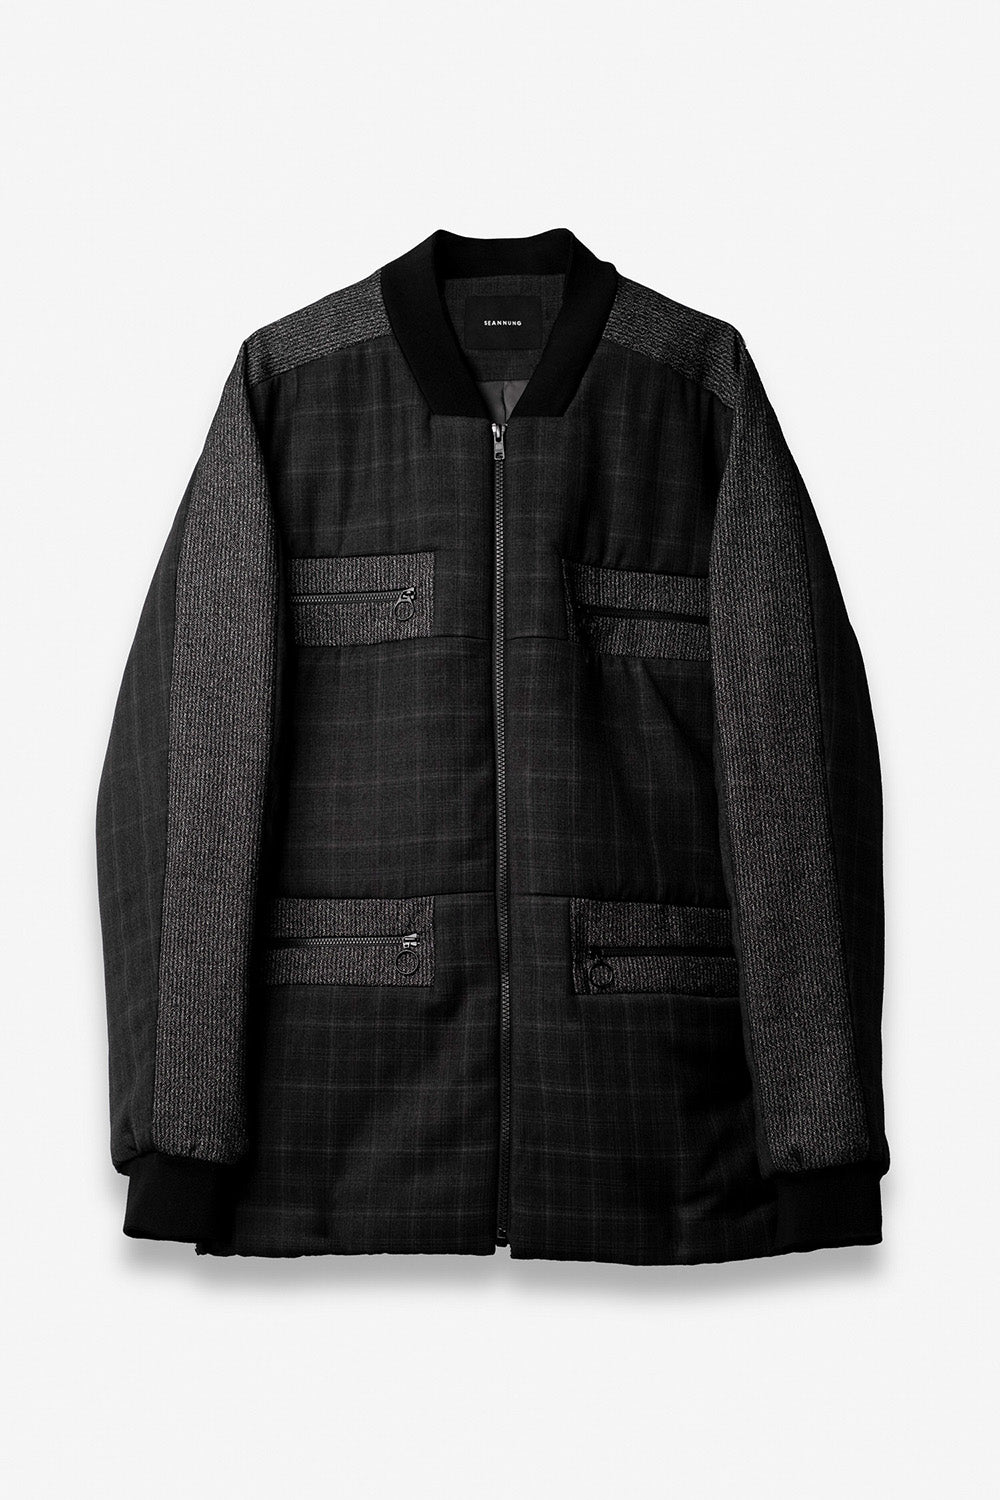 Square Cut Padded Jacket in Grey